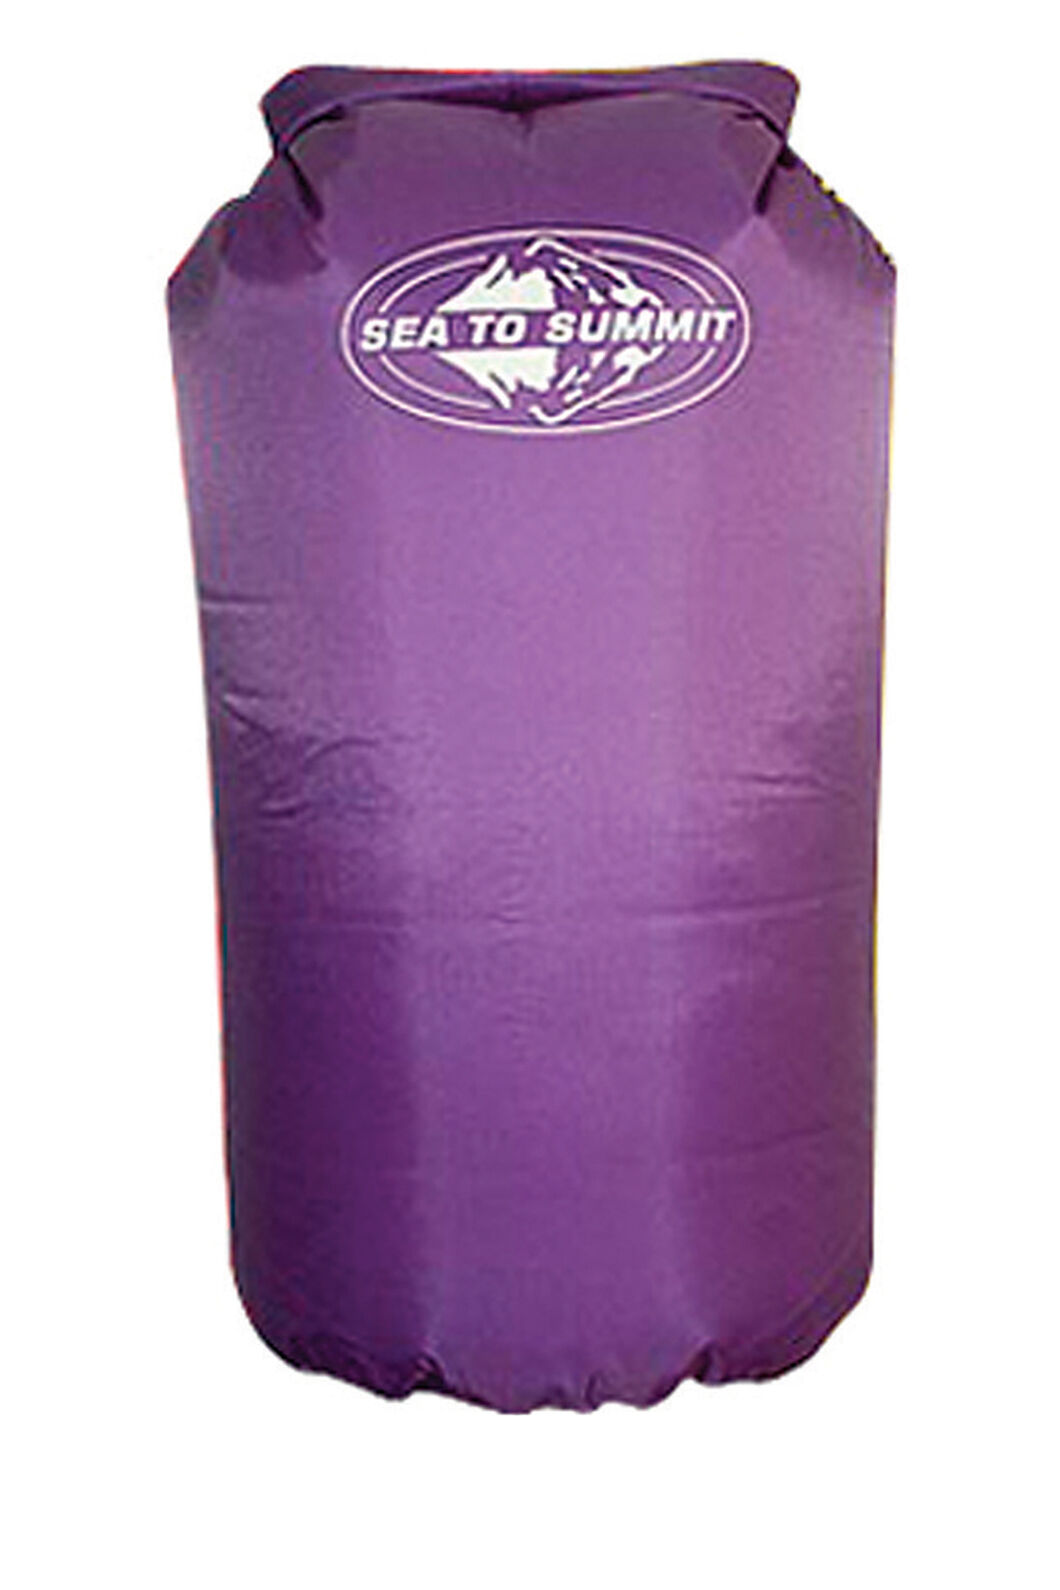 Sea to Summit 8L Light Dry Sack, None, hi-res